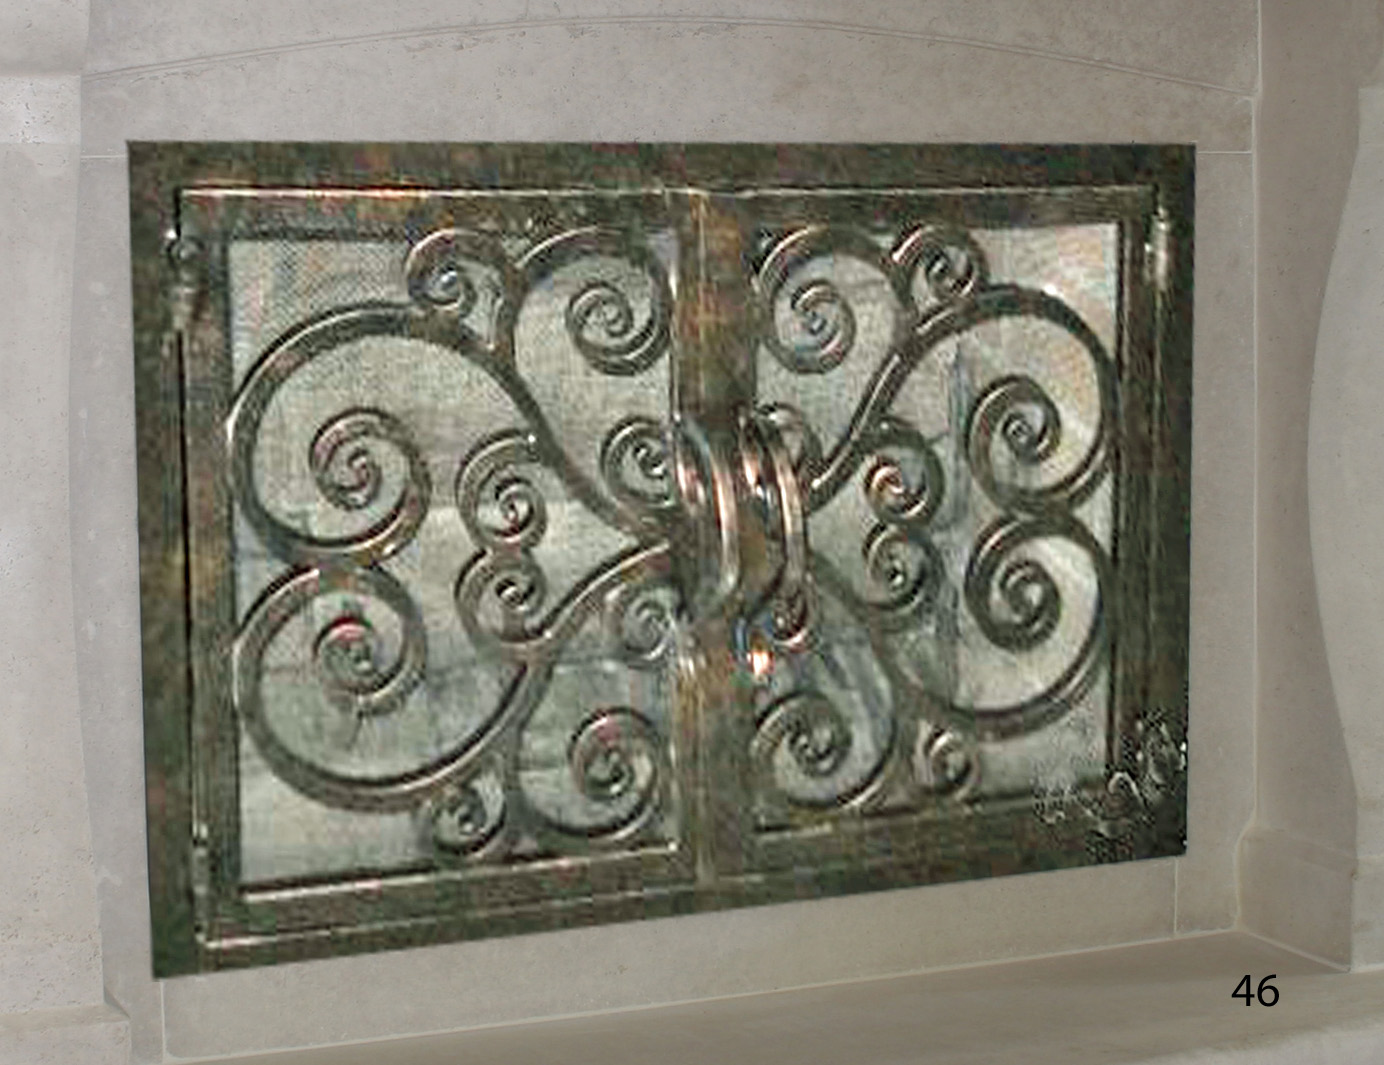 Hand Forged Iron Fireplace Doors Fd046 From Mantel Depot In San Diego